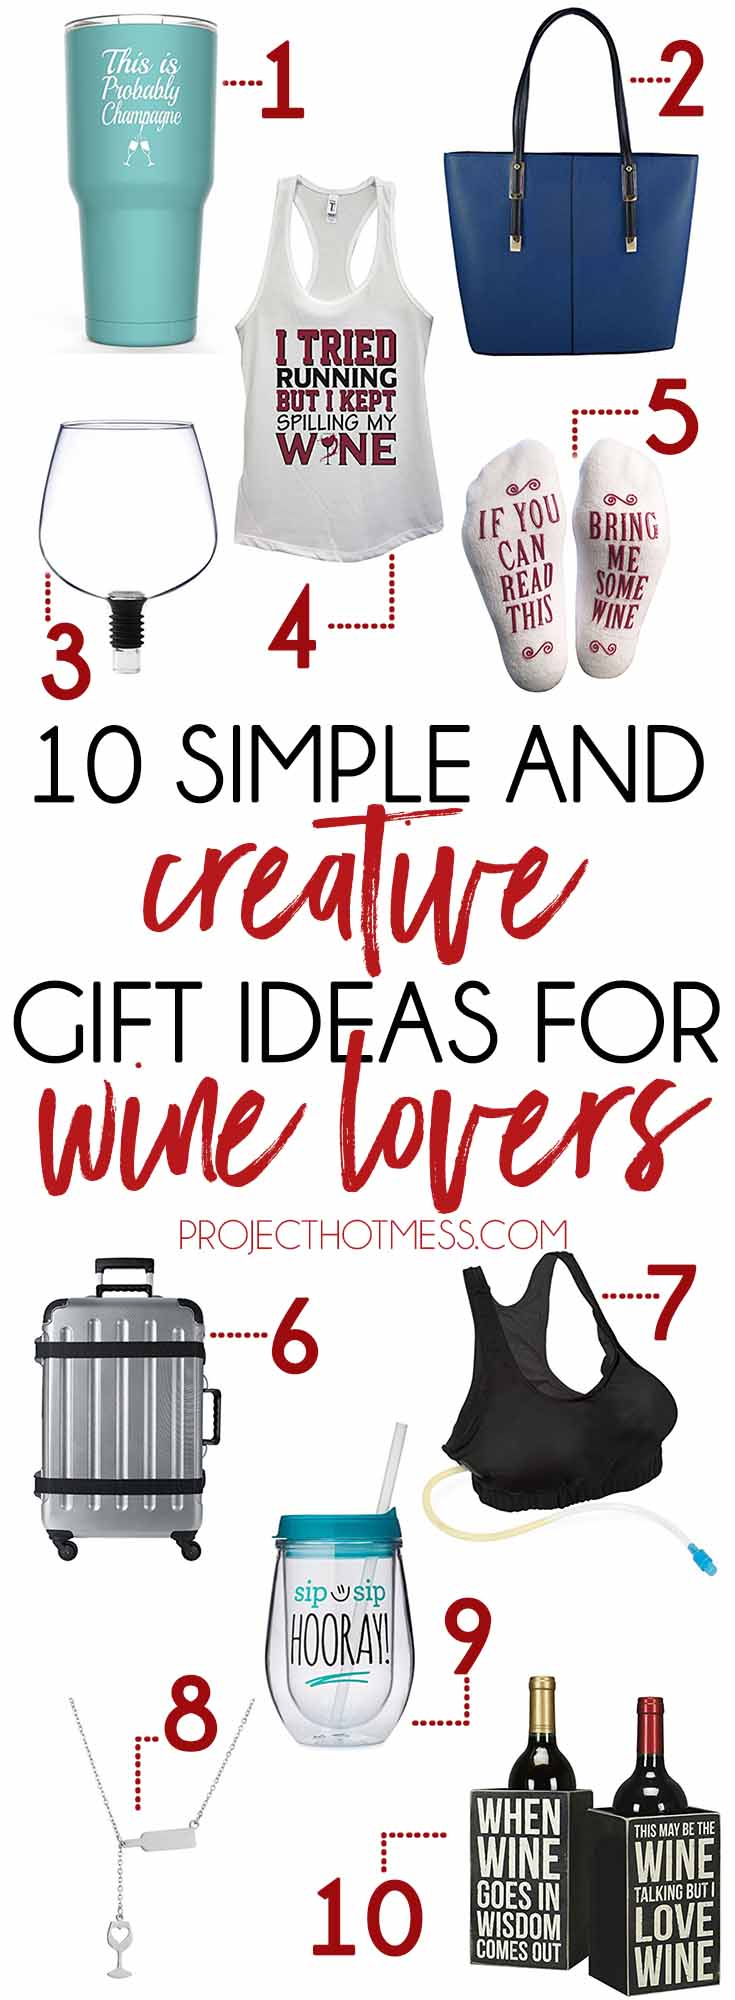 10 Simple And Creative Gift Ideas For Wine Lovers Project Hot Mess